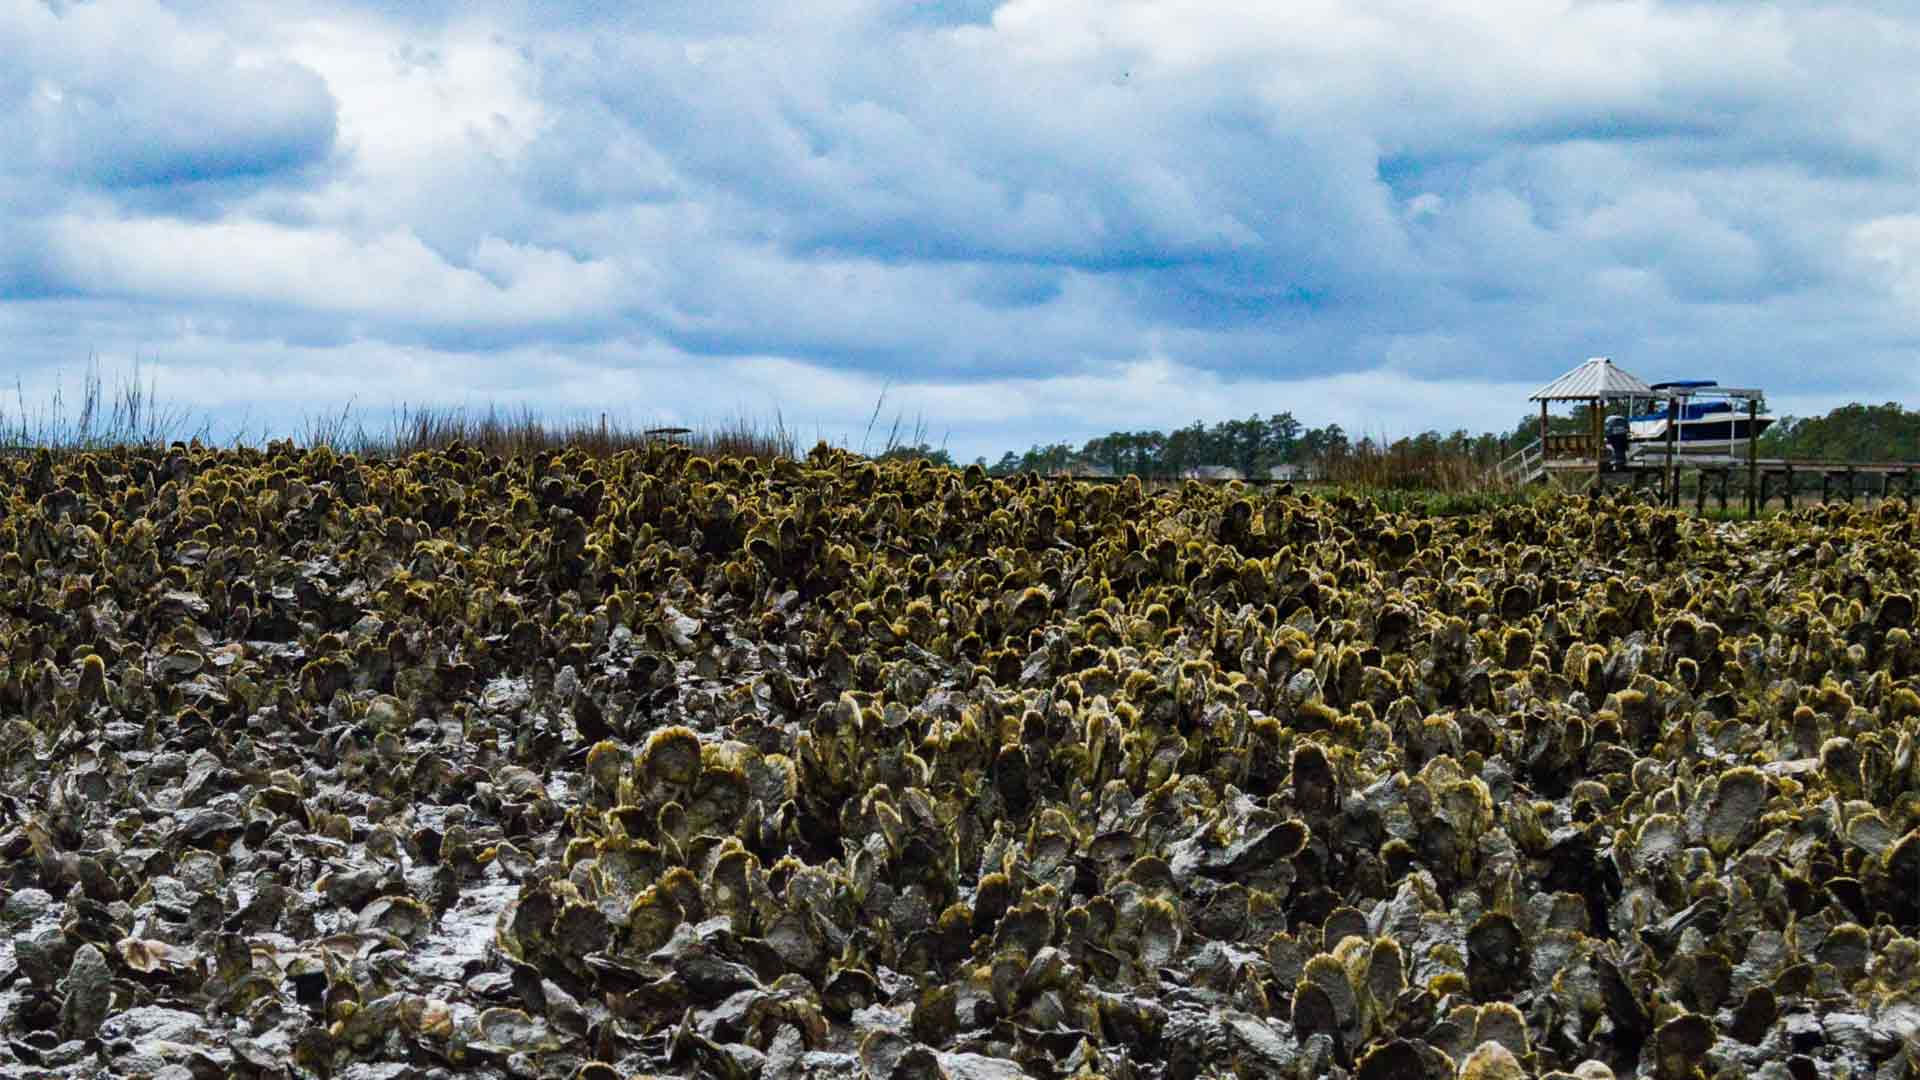 Oysters growing in pluff mud in Mount Pleasant, SC